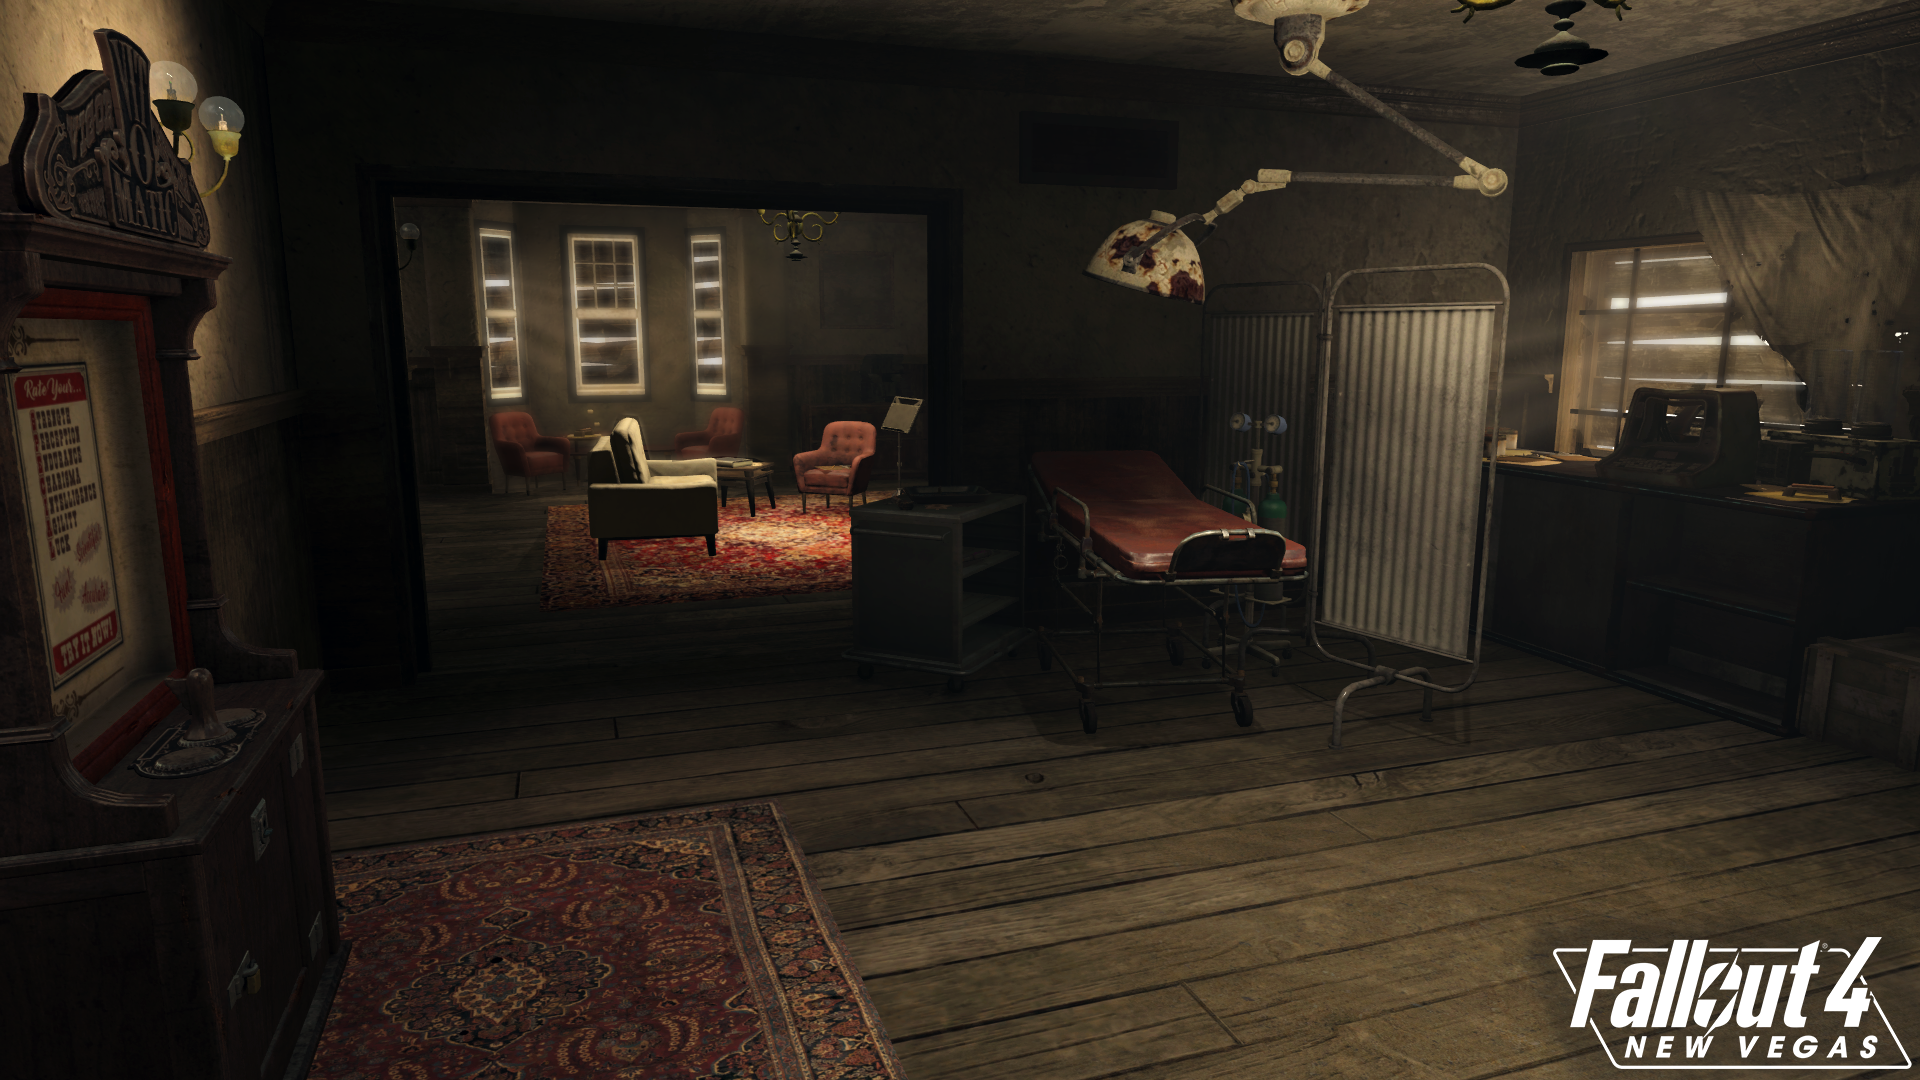 Doc mitchell 39 s house interior image fallout 4 new vegas for Best house design fallout 4